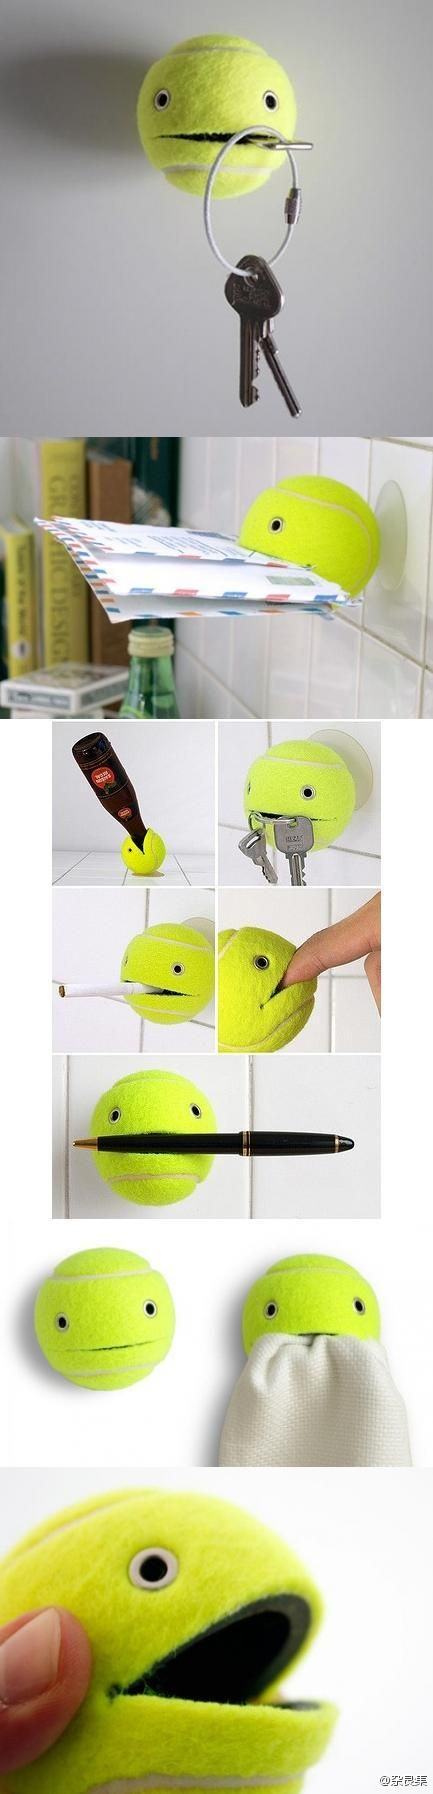 clever and makes me giggleBall Holders, Crafts Ideas, Stuff, Cute Ideas, Funny, Tennisball, Things, Diy, Tennis Ball